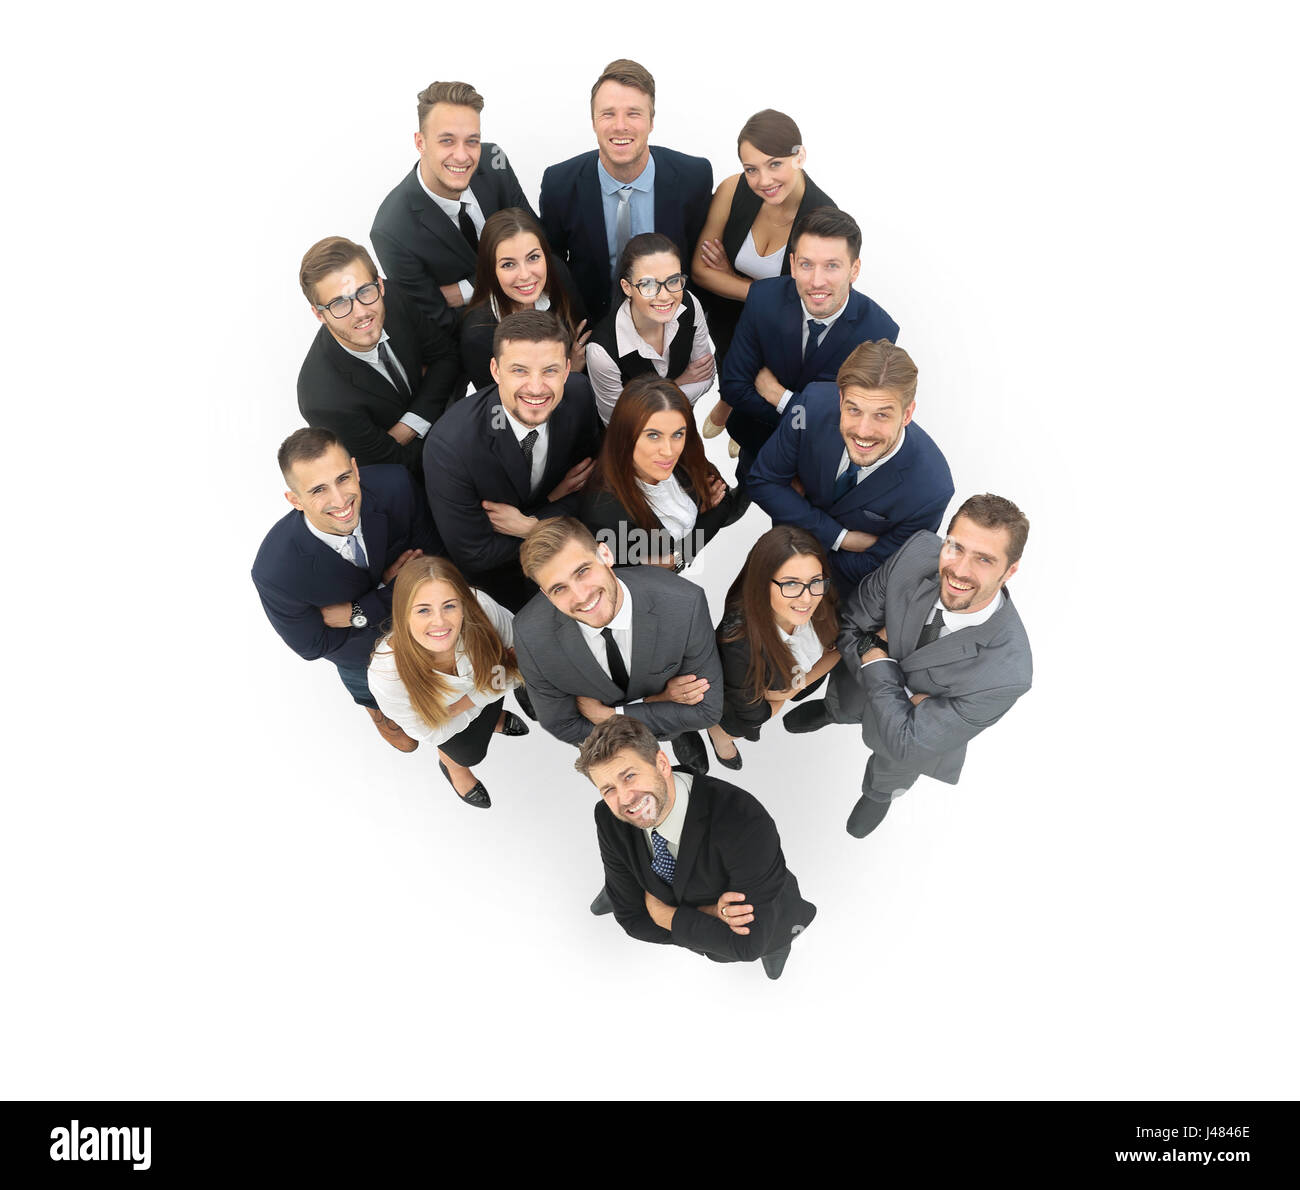 Portrait of smiling business people against white background - Stock Image